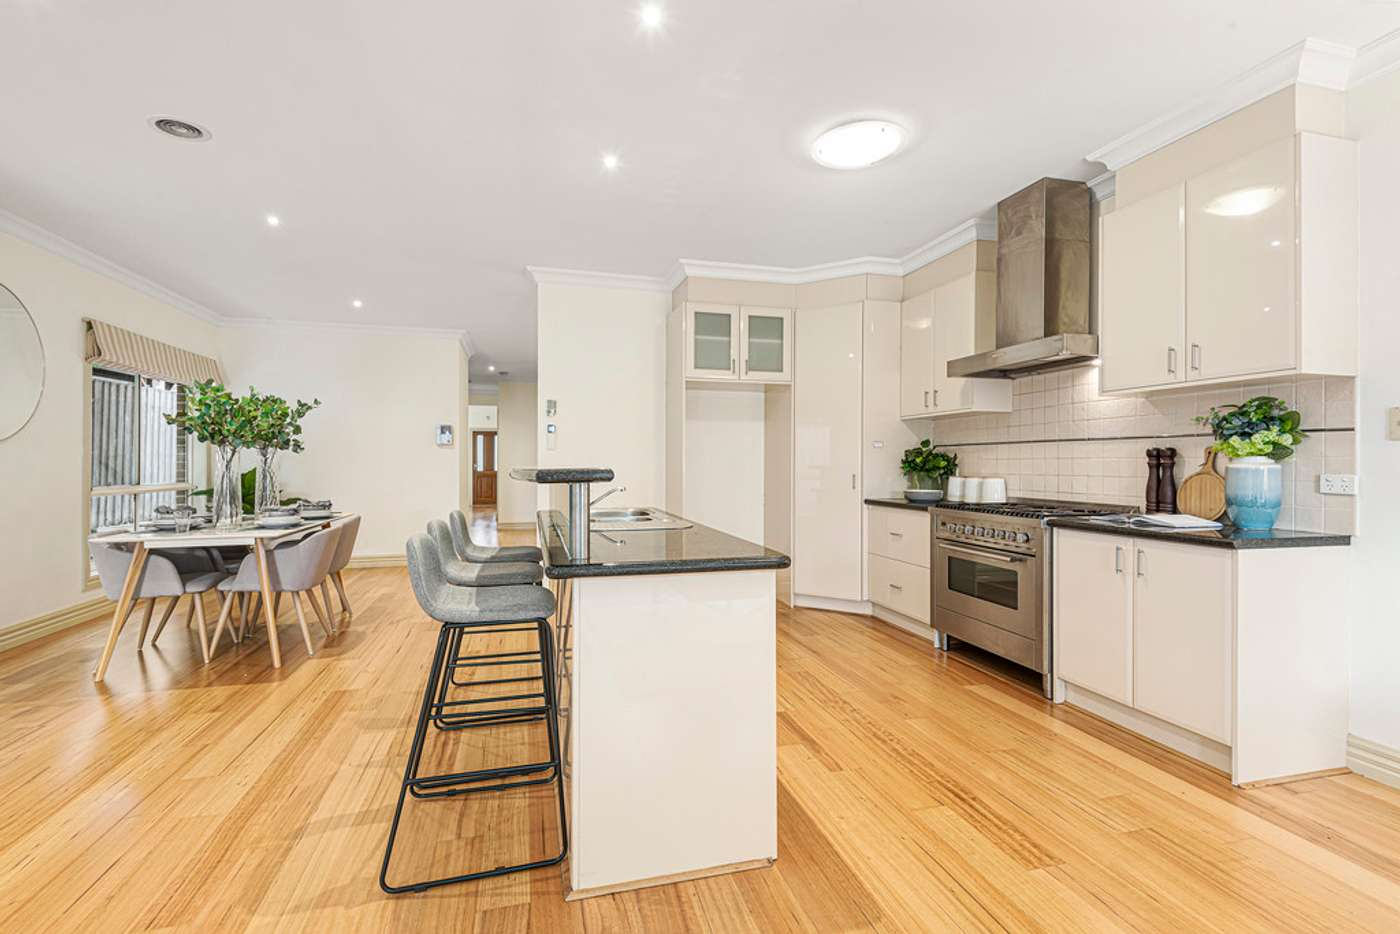 Fifth view of Homely townhouse listing, 199A Belmore Road, Balwyn North VIC 3104